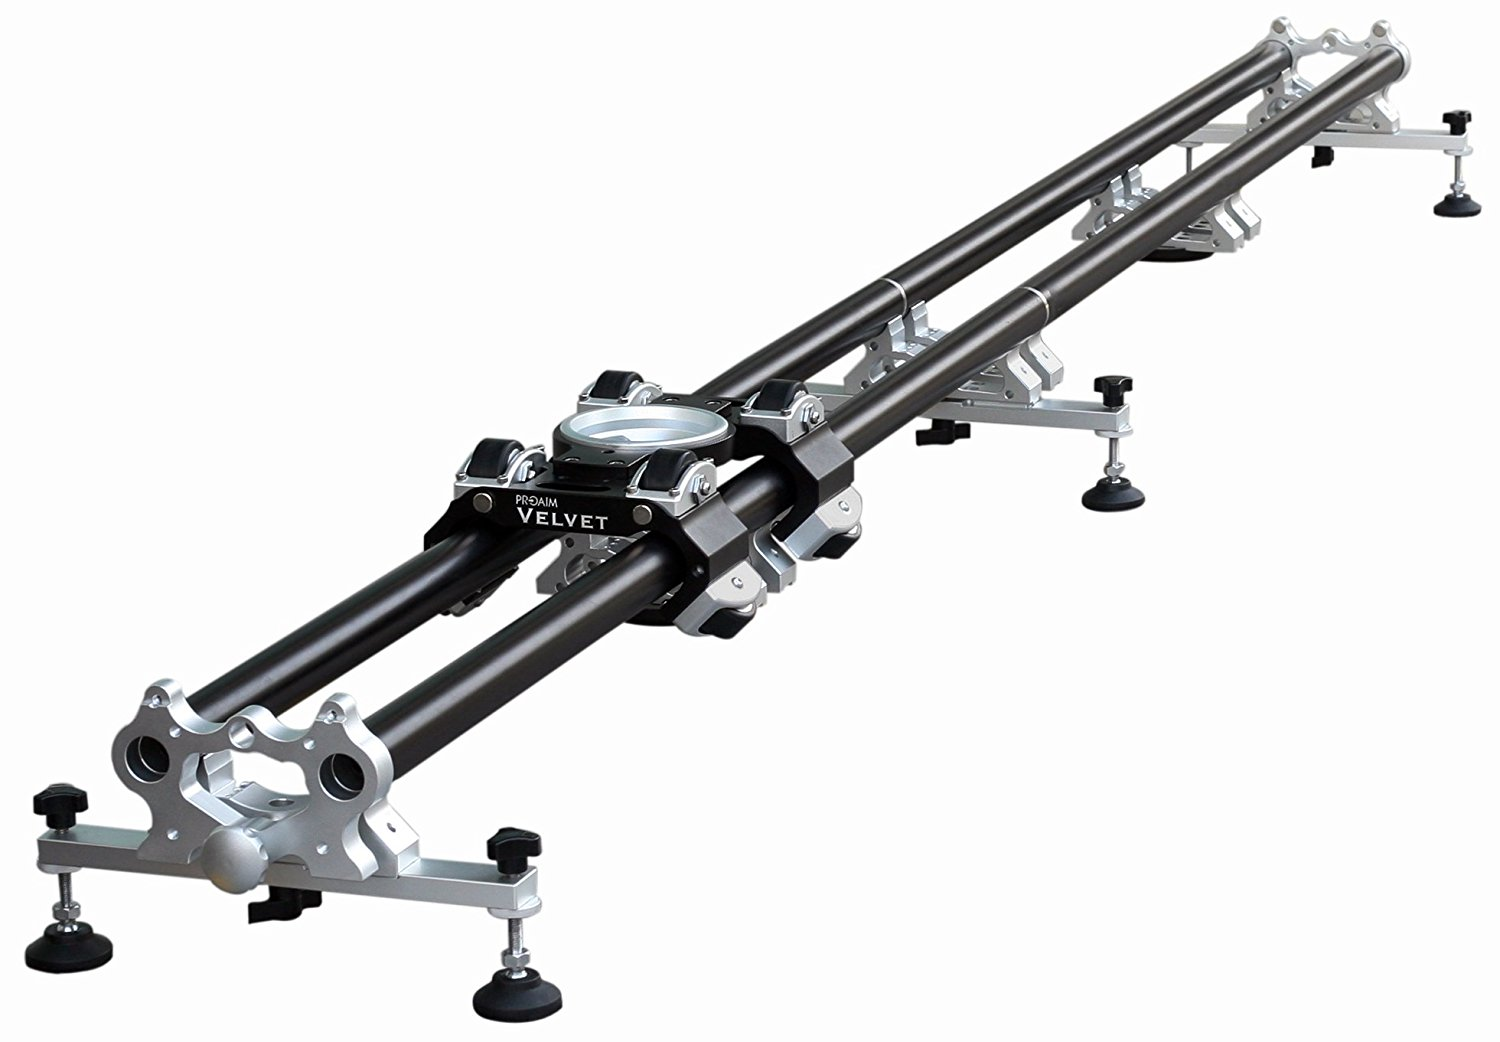 Buy Proaim 8ft Velvet Professional Camera Slider